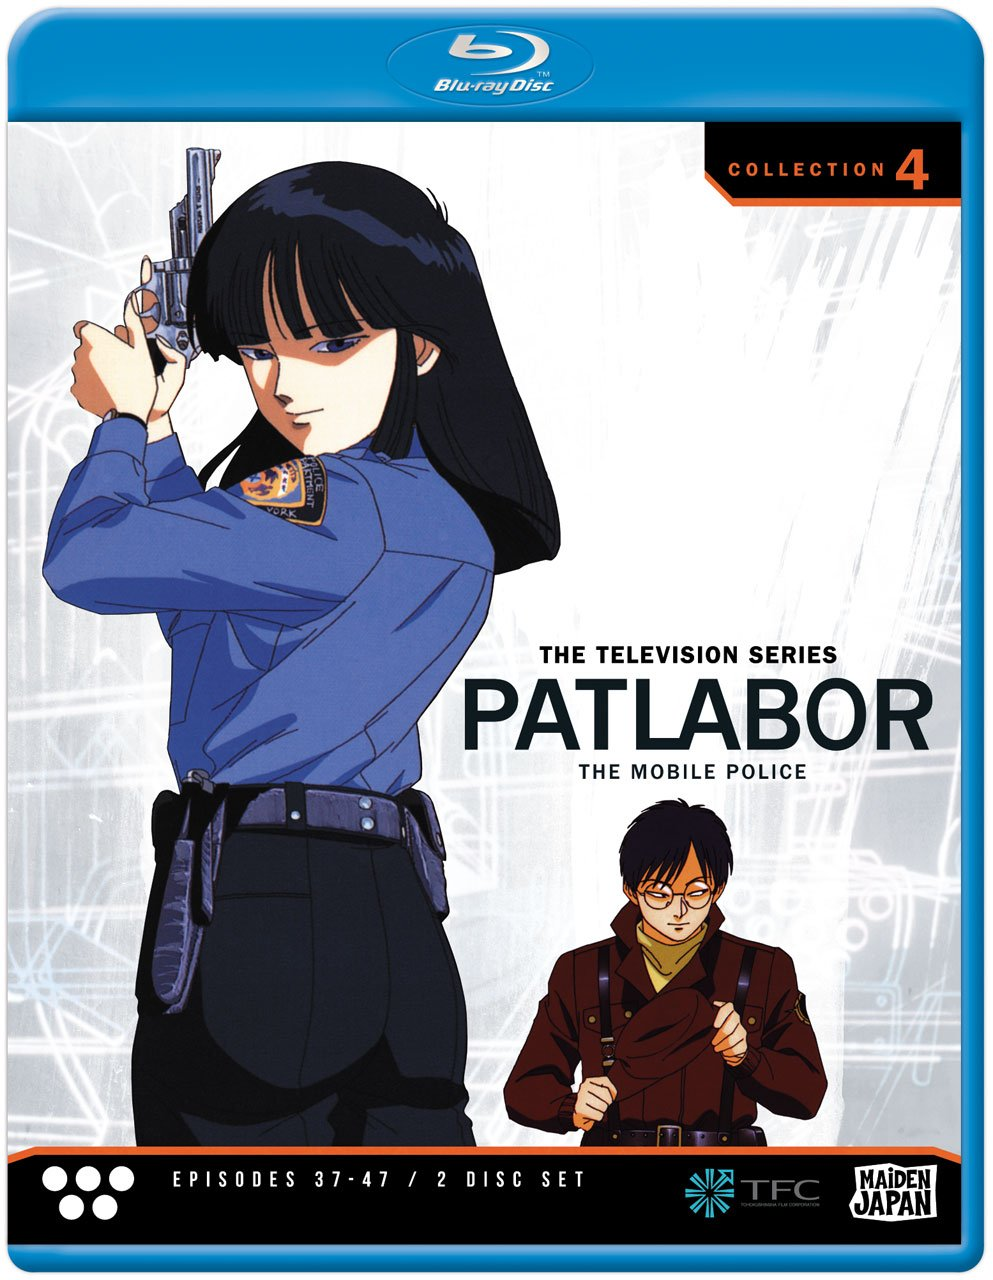 Blu-ray : Patlabor Tv Collection 4 (Subtitled, Dubbed, 2PC)